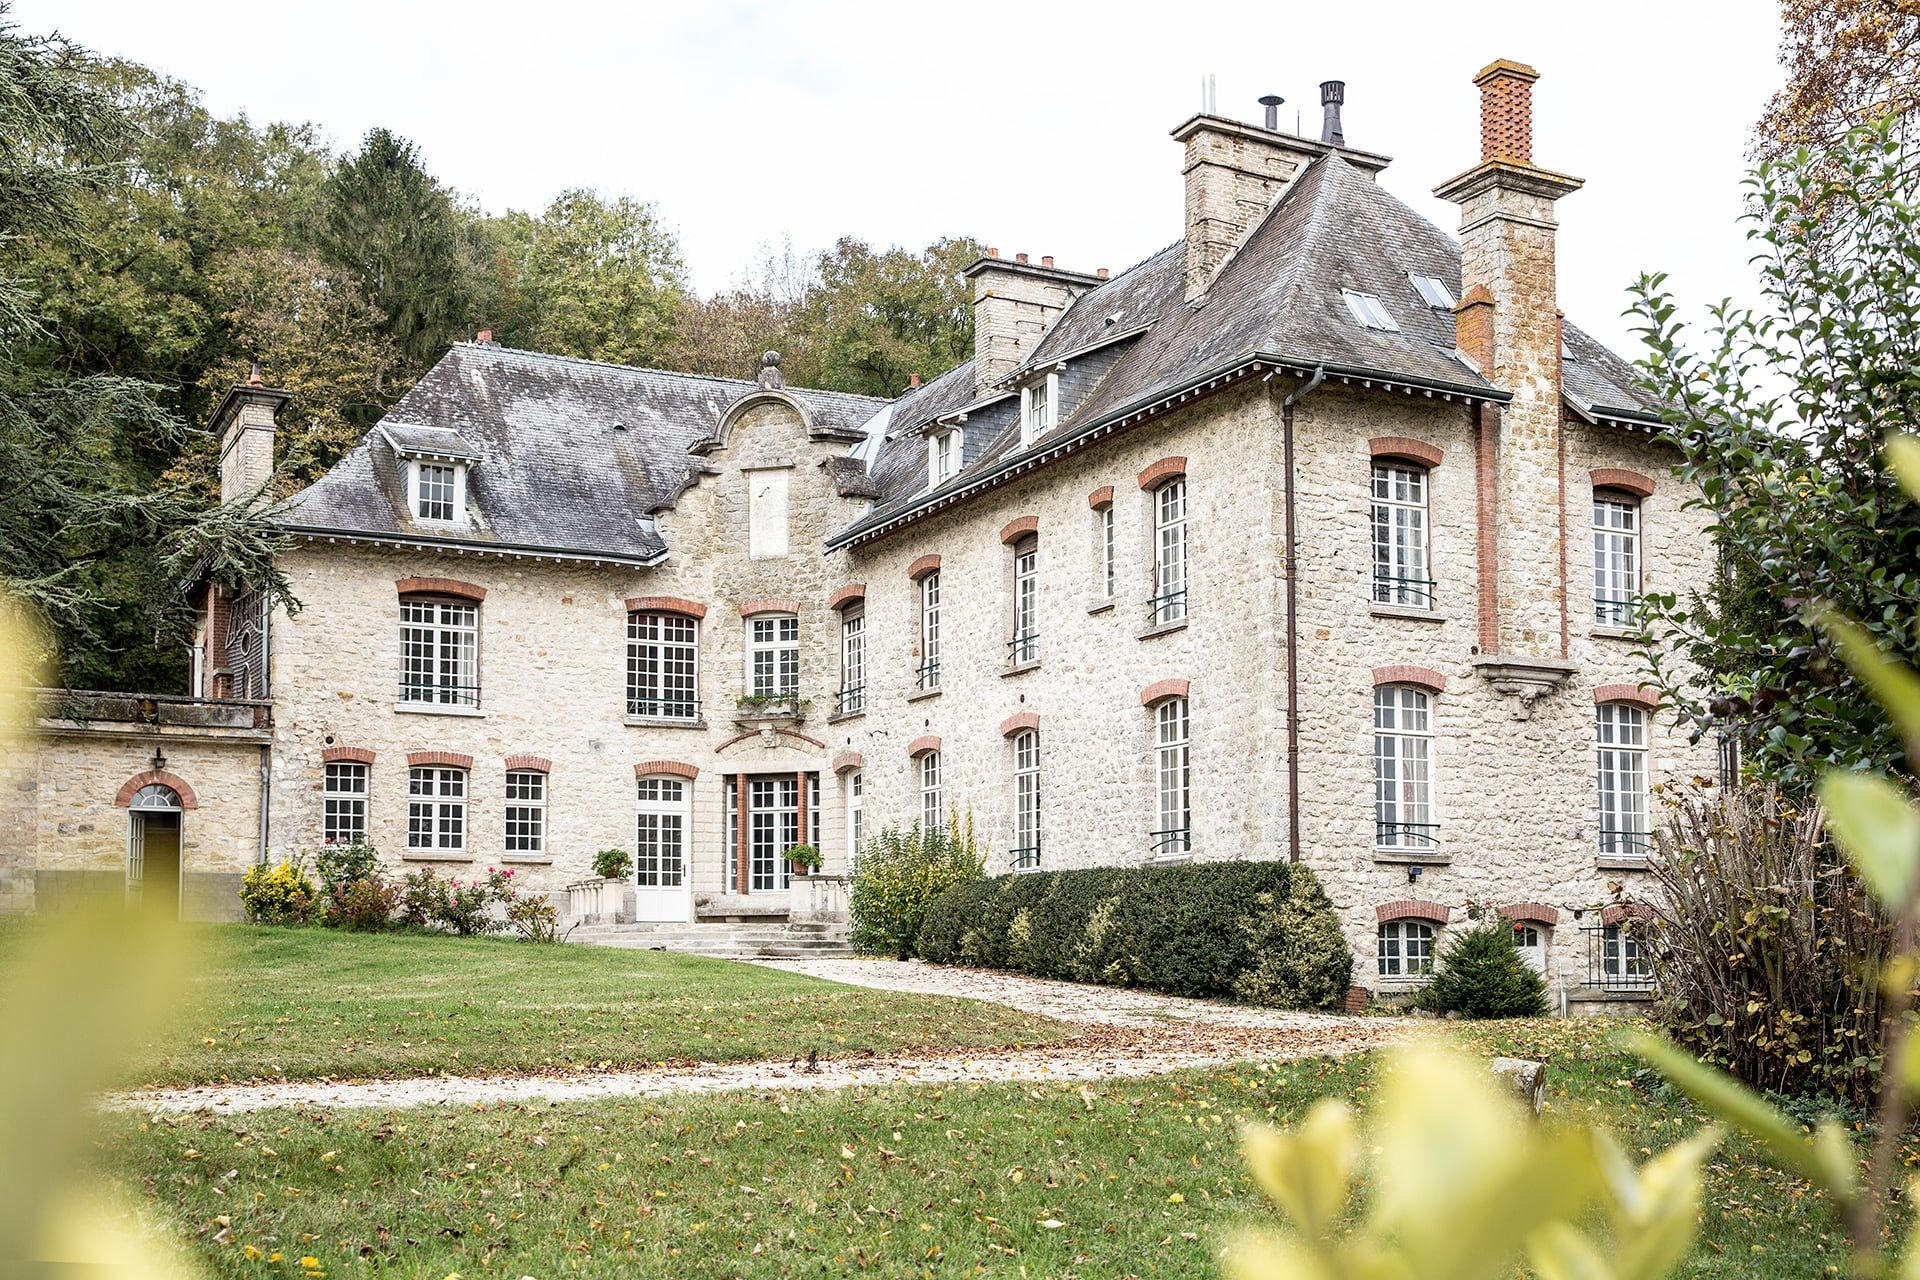 Garden view of Chateau Boll